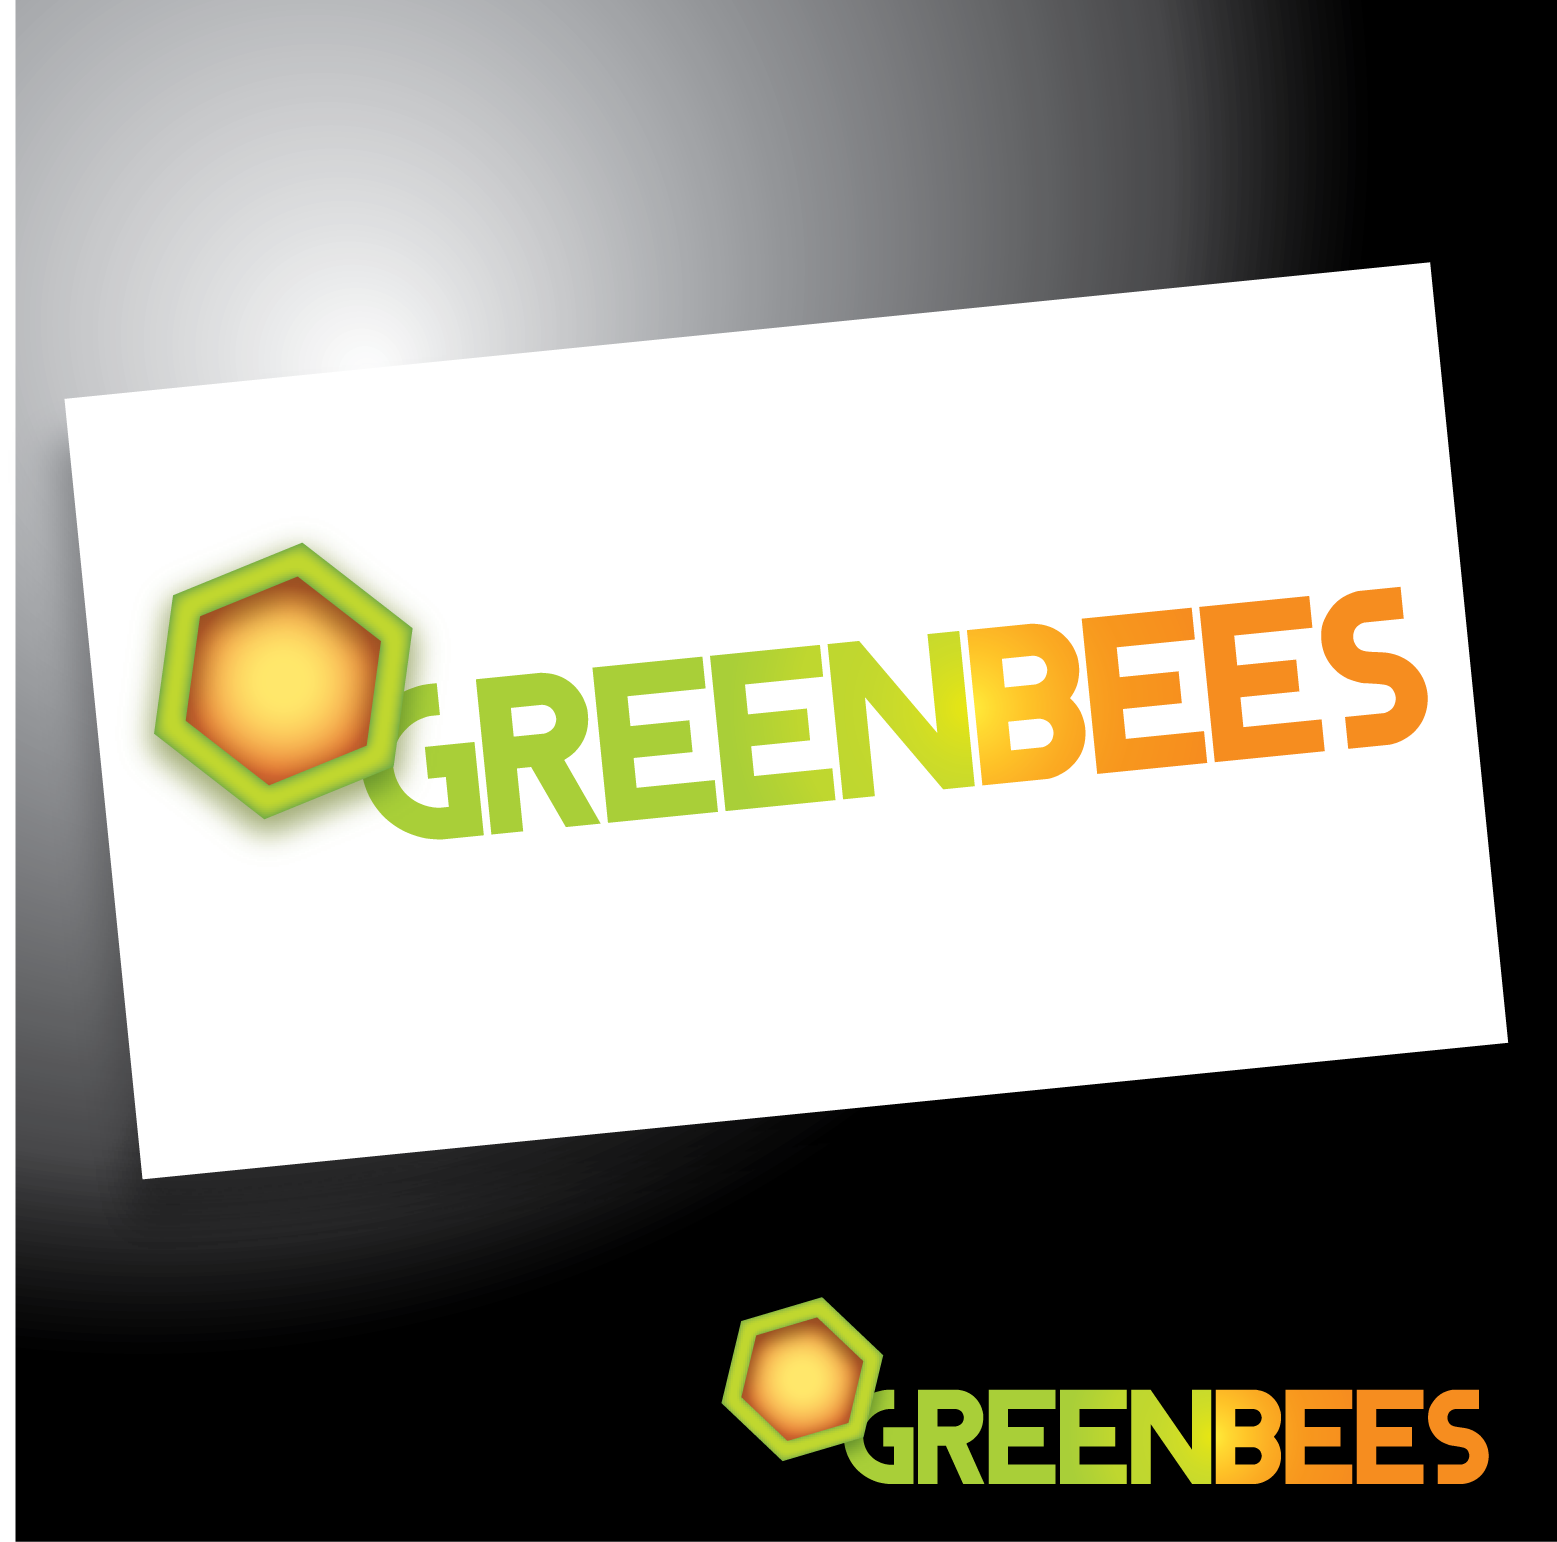 Logo Design by Teresa Abney - Entry No. 163 in the Logo Design Contest Greenbees Logo Design.